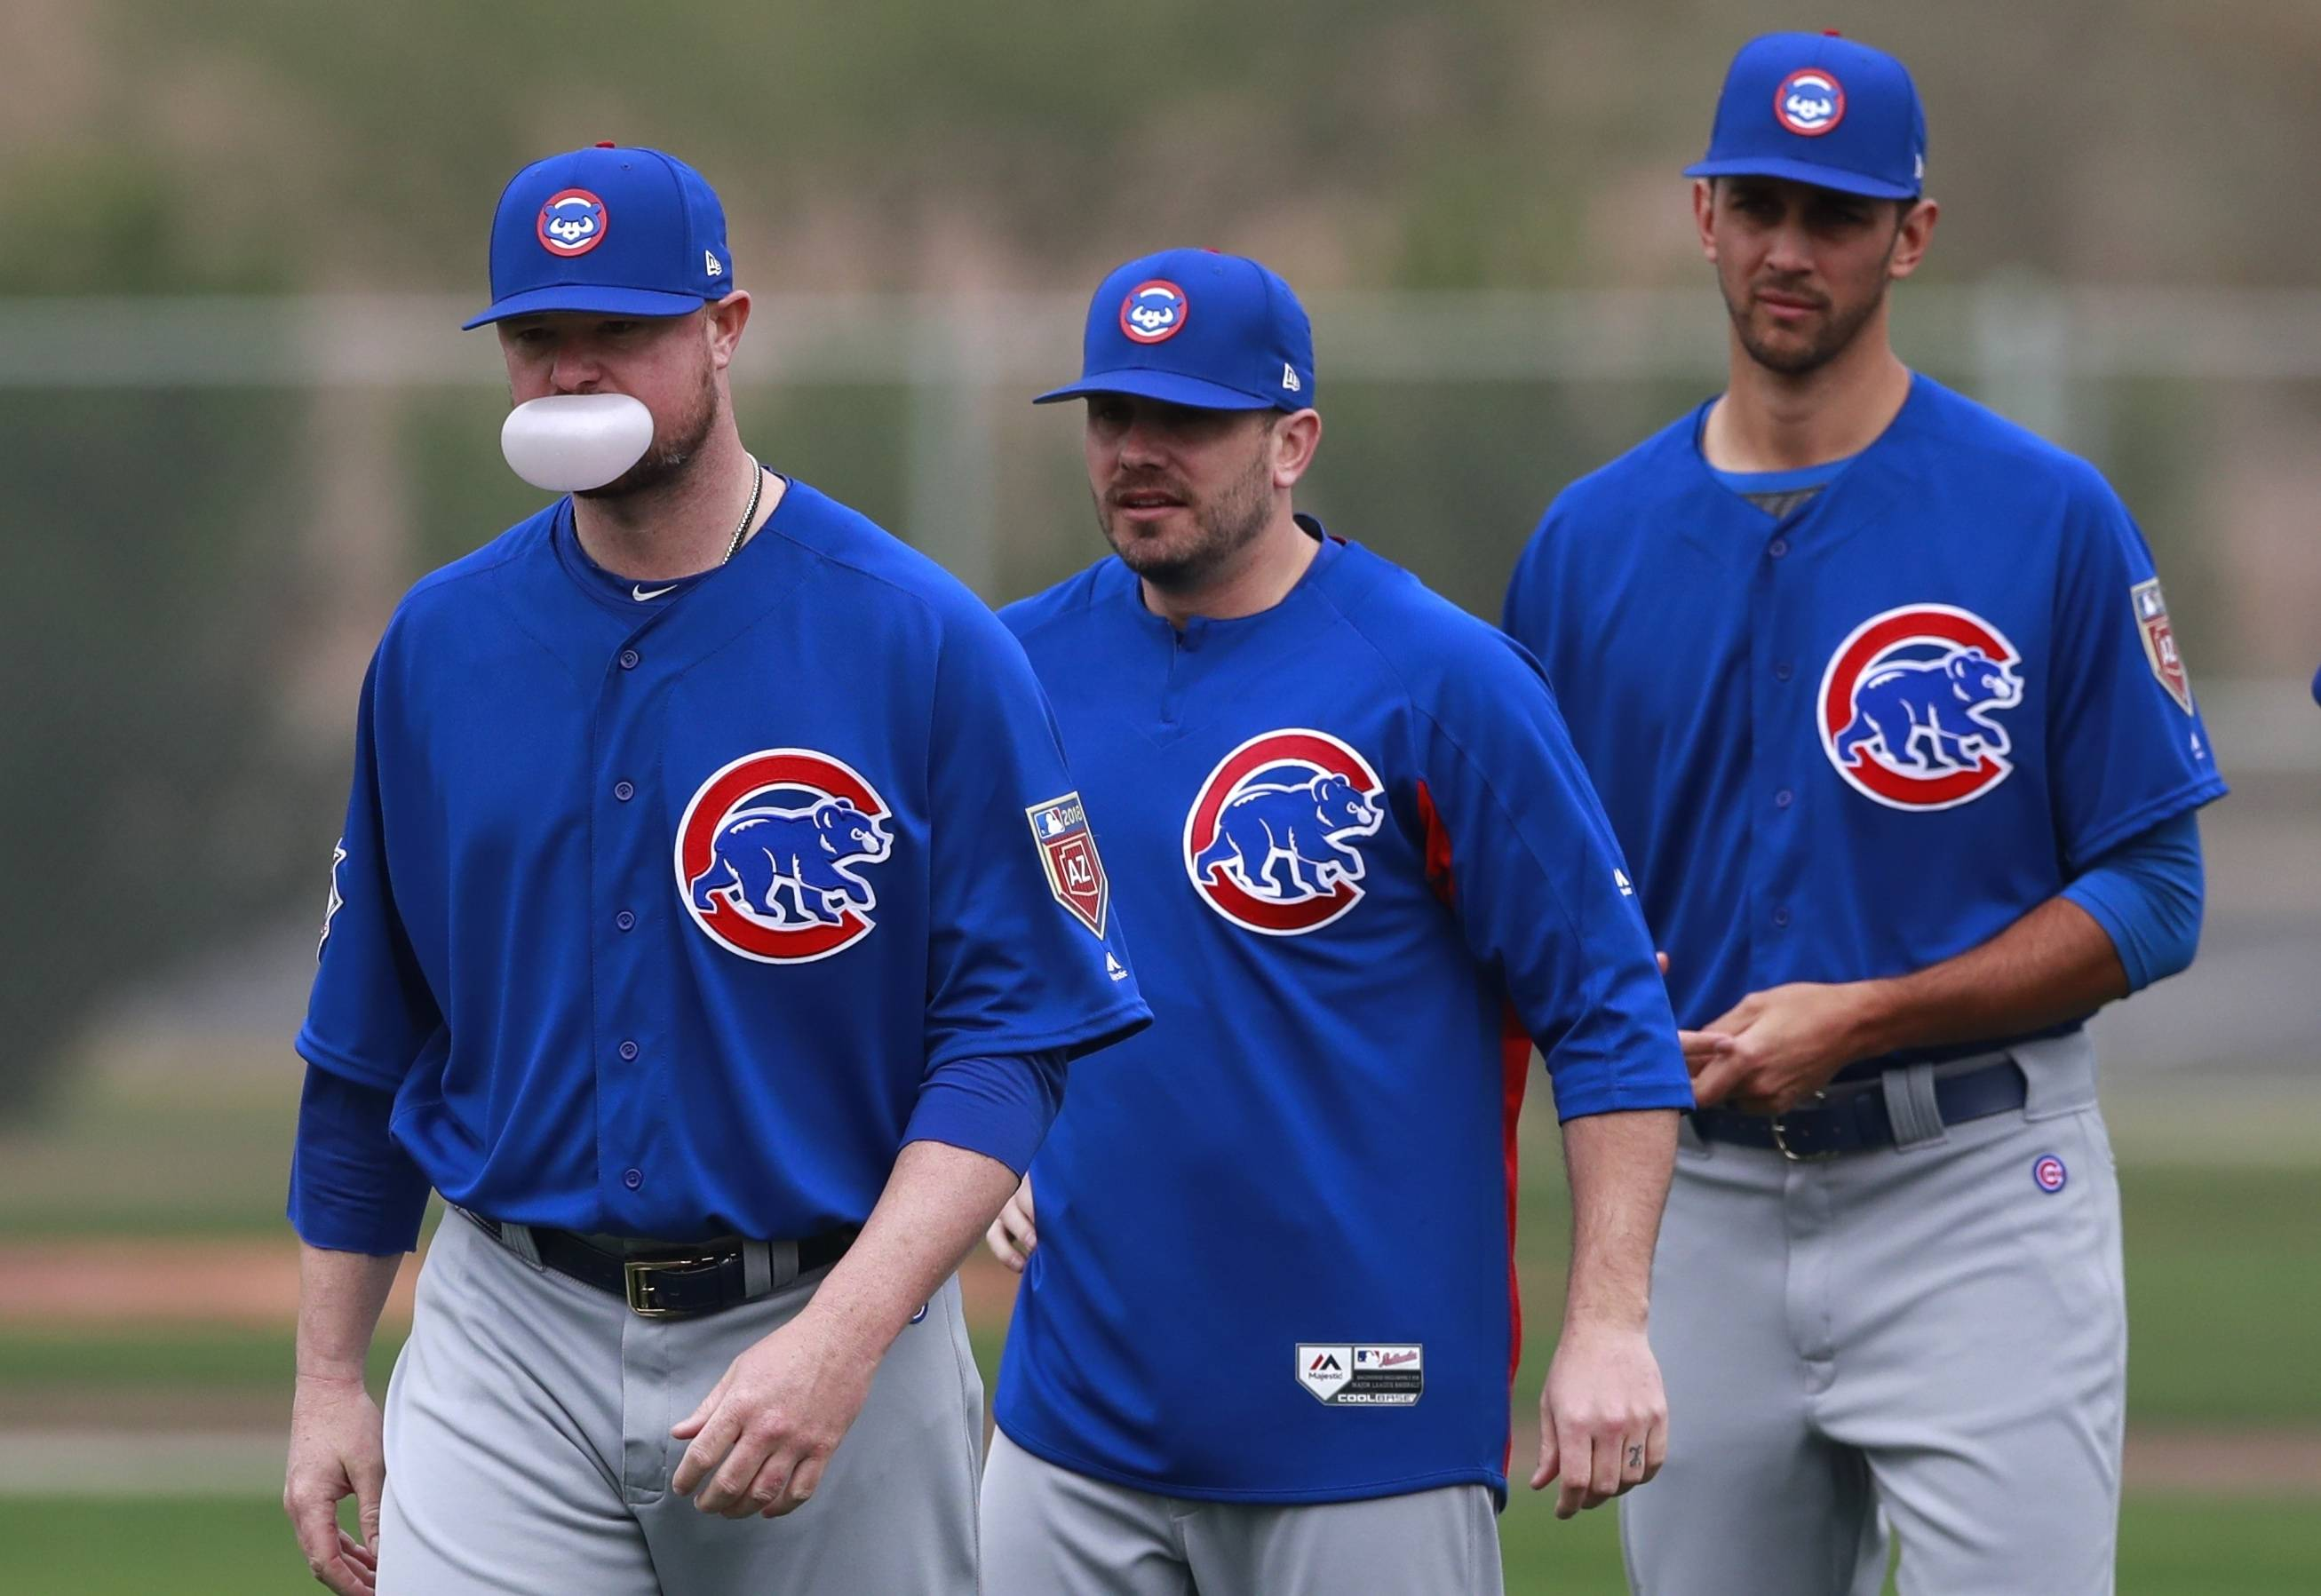 Chicago Cubs starting pitcher Jon Lester leads teammates in a stretching drill at the team's spring training baseball facility Friday, Feb. 16, 2018, in Mesa, Ariz. (AP Photo/Carlos Osorio)